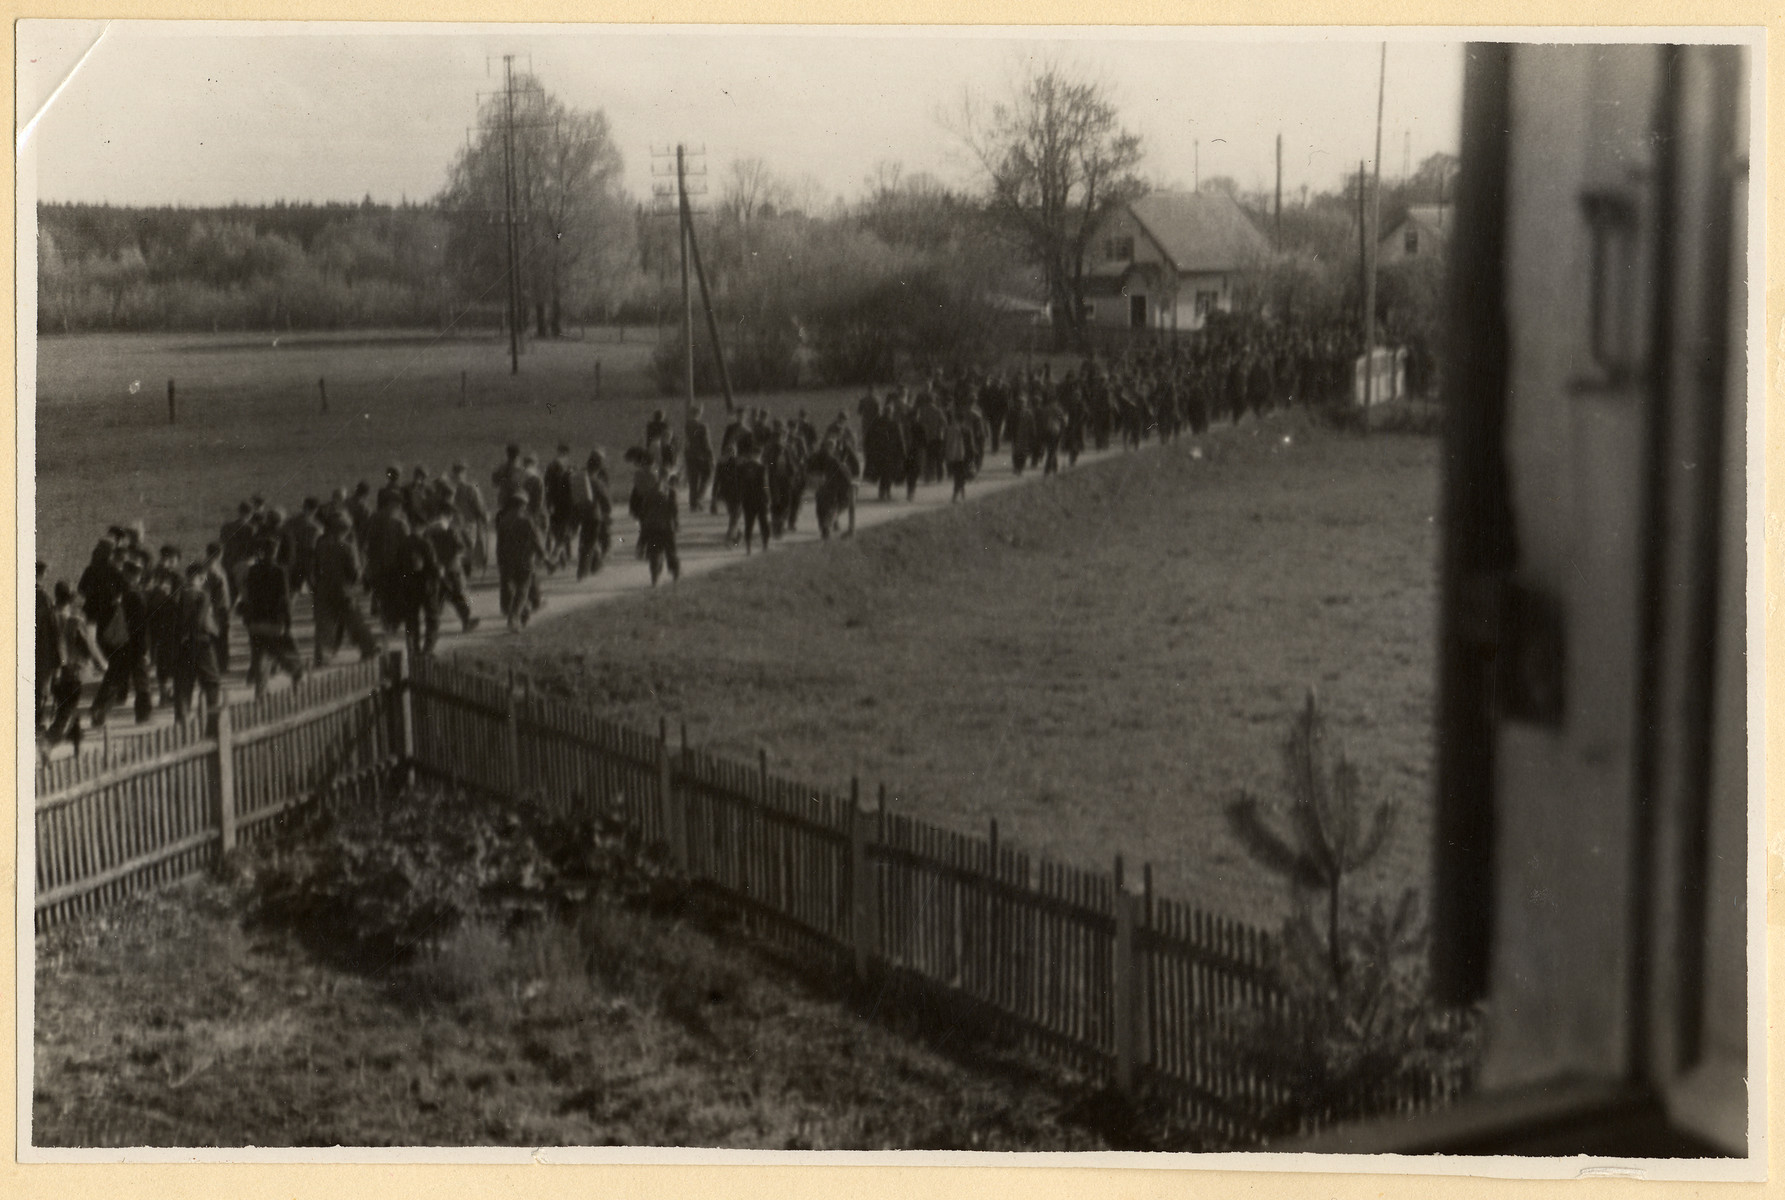 Clandestine photograph of prisoners marching to Dachau.   Maria Seidenberger took the photo from the second story window of her family's home while her mother stood outside and gave potatoes to the prisoners.